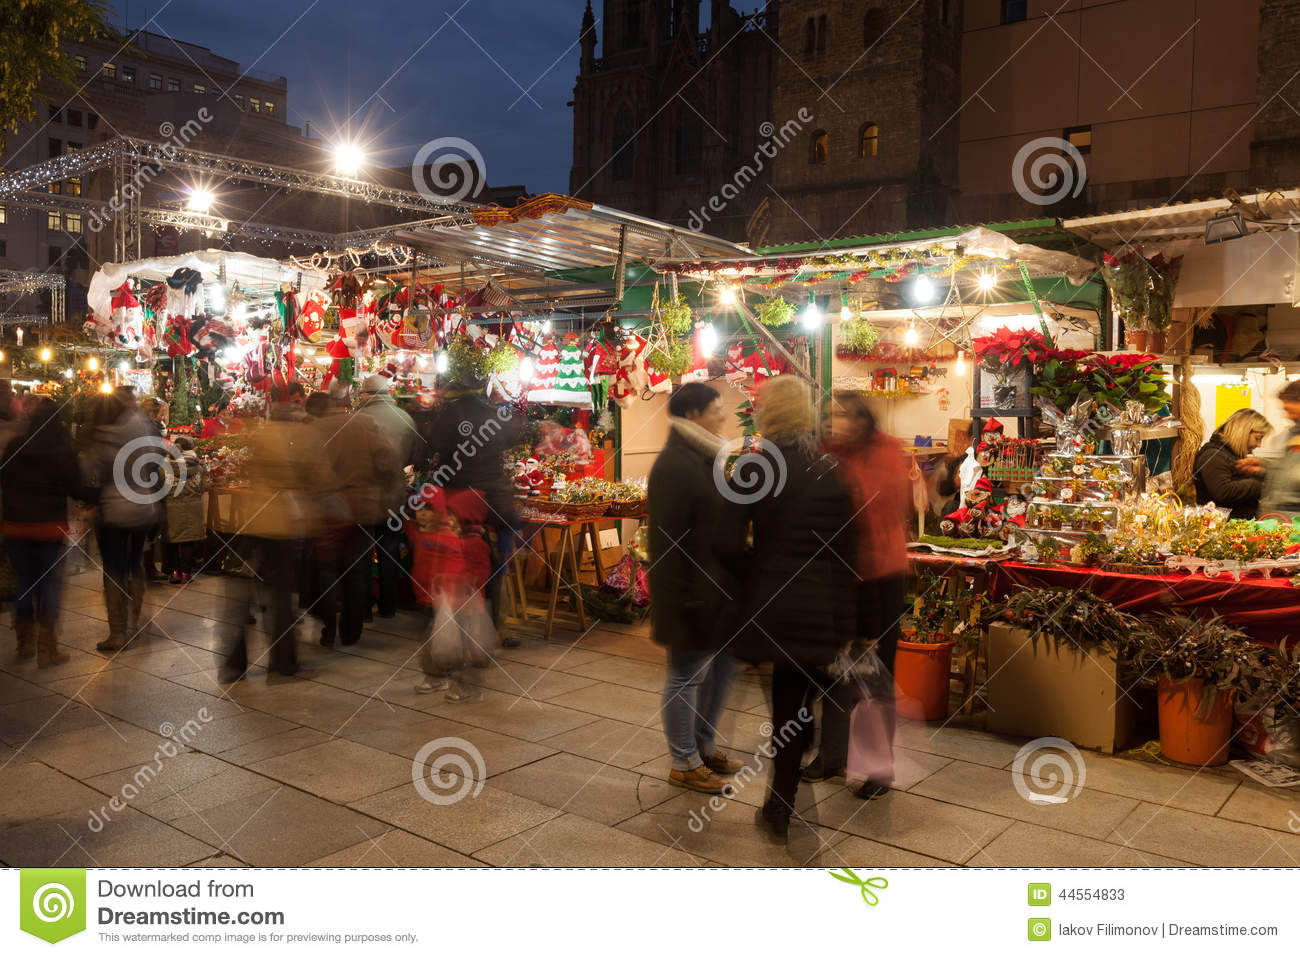 Christmas market near Cathedral in evening